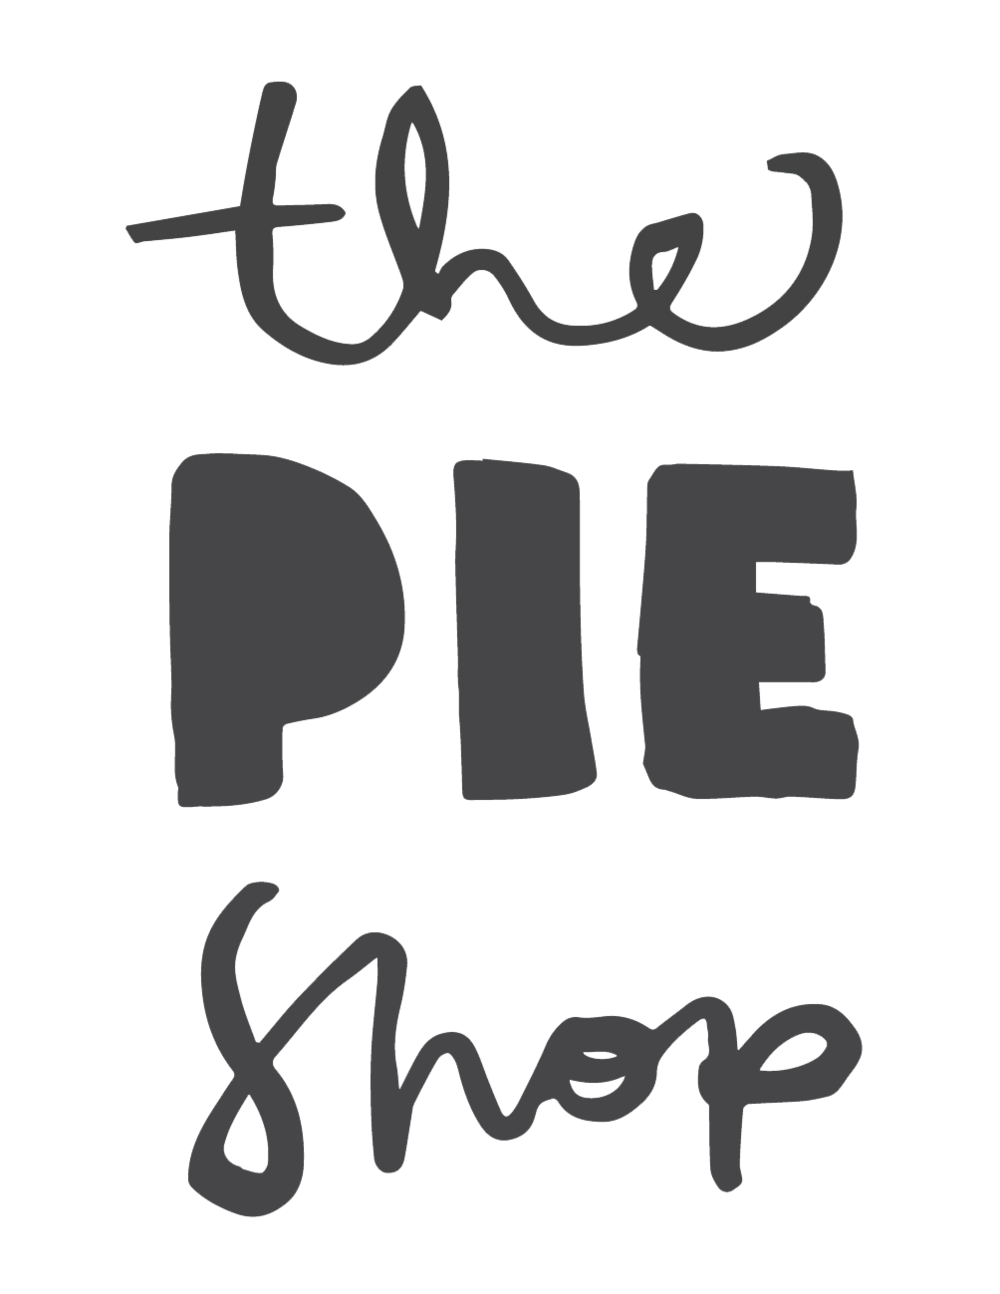 THEPIESHOP_LOGO-Charcoal_Transparent.png